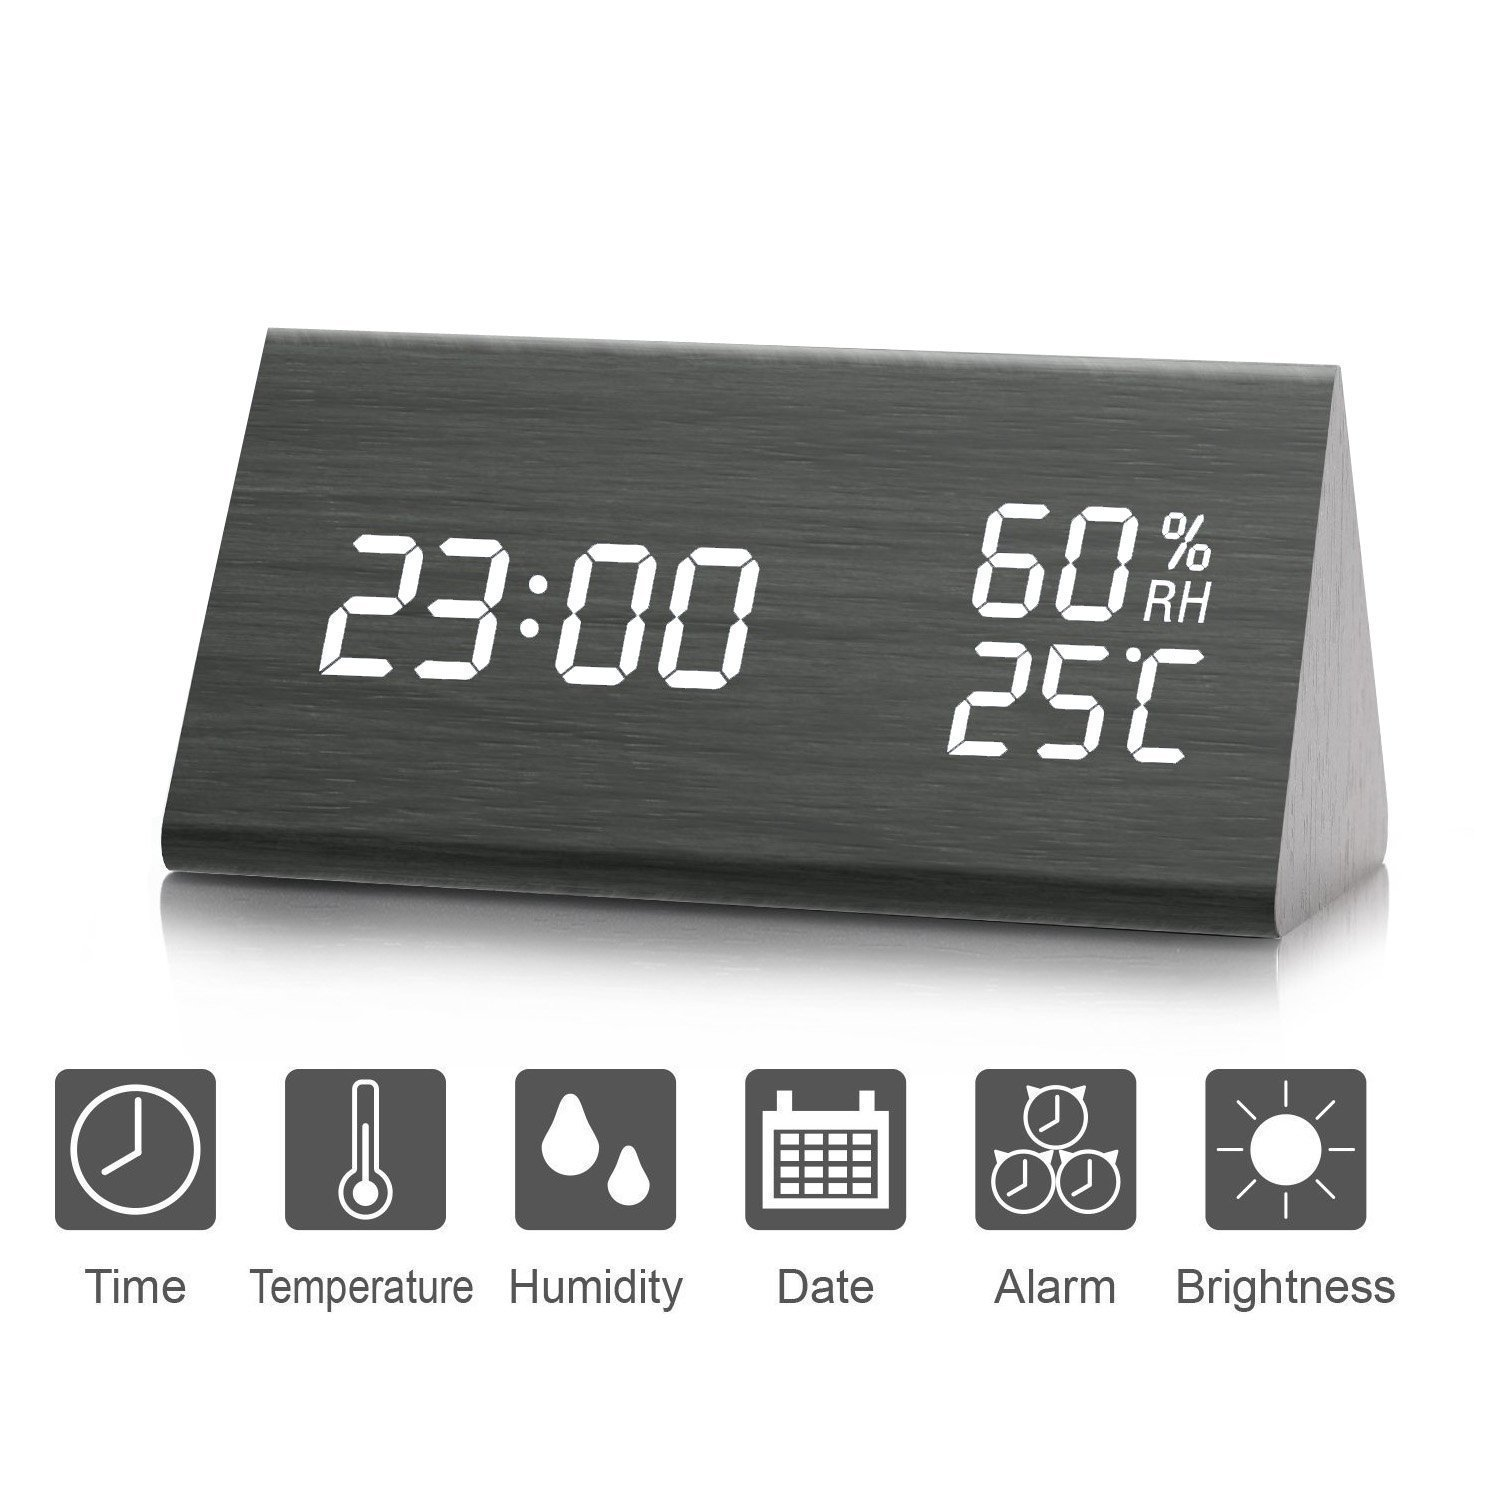 Digital Alarm Clock, 【2018 NEW】 Wooden Alarm Clock with Triple Alarms Setting, Dual Time (12/24) Mode, Date LED Display, 3 Levels Brightness, Temperature and Humidity Wood Grain Clock for Bedrooms